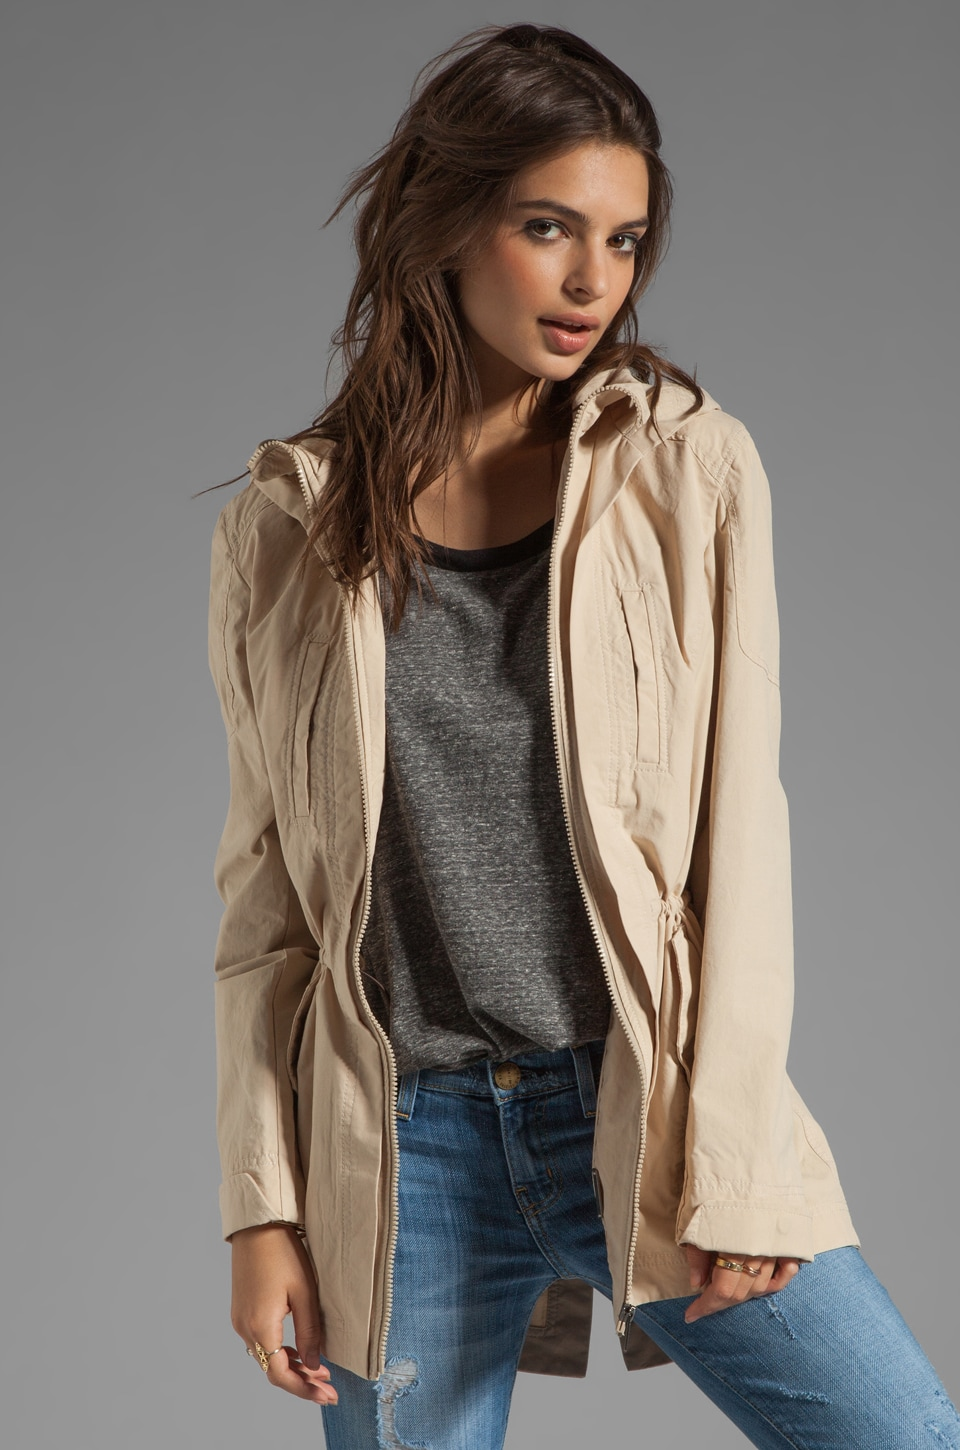 Soia & Kyo Perni Trench Jacket in Sand